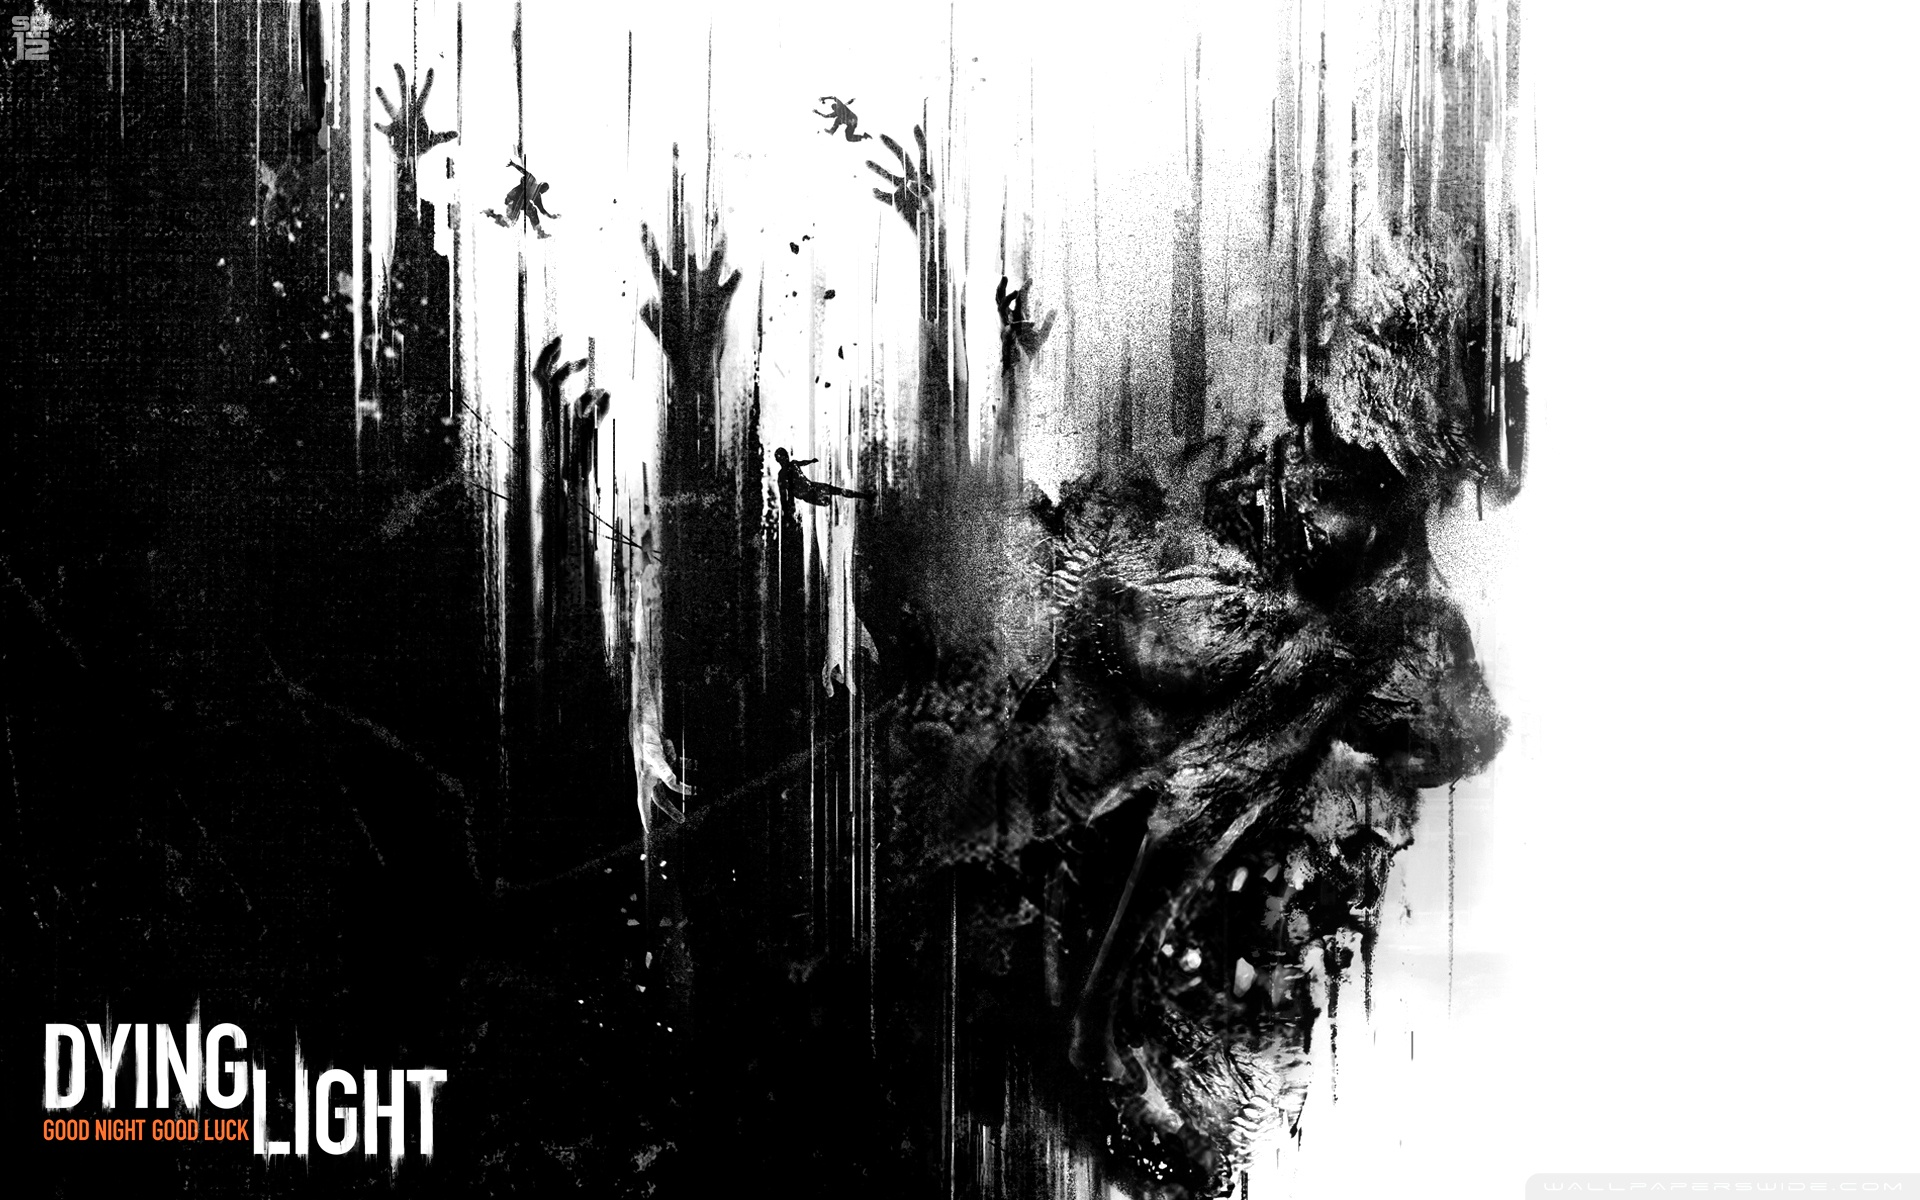 Related Wallpapers Dying Light 354176 Hd Wallpaper